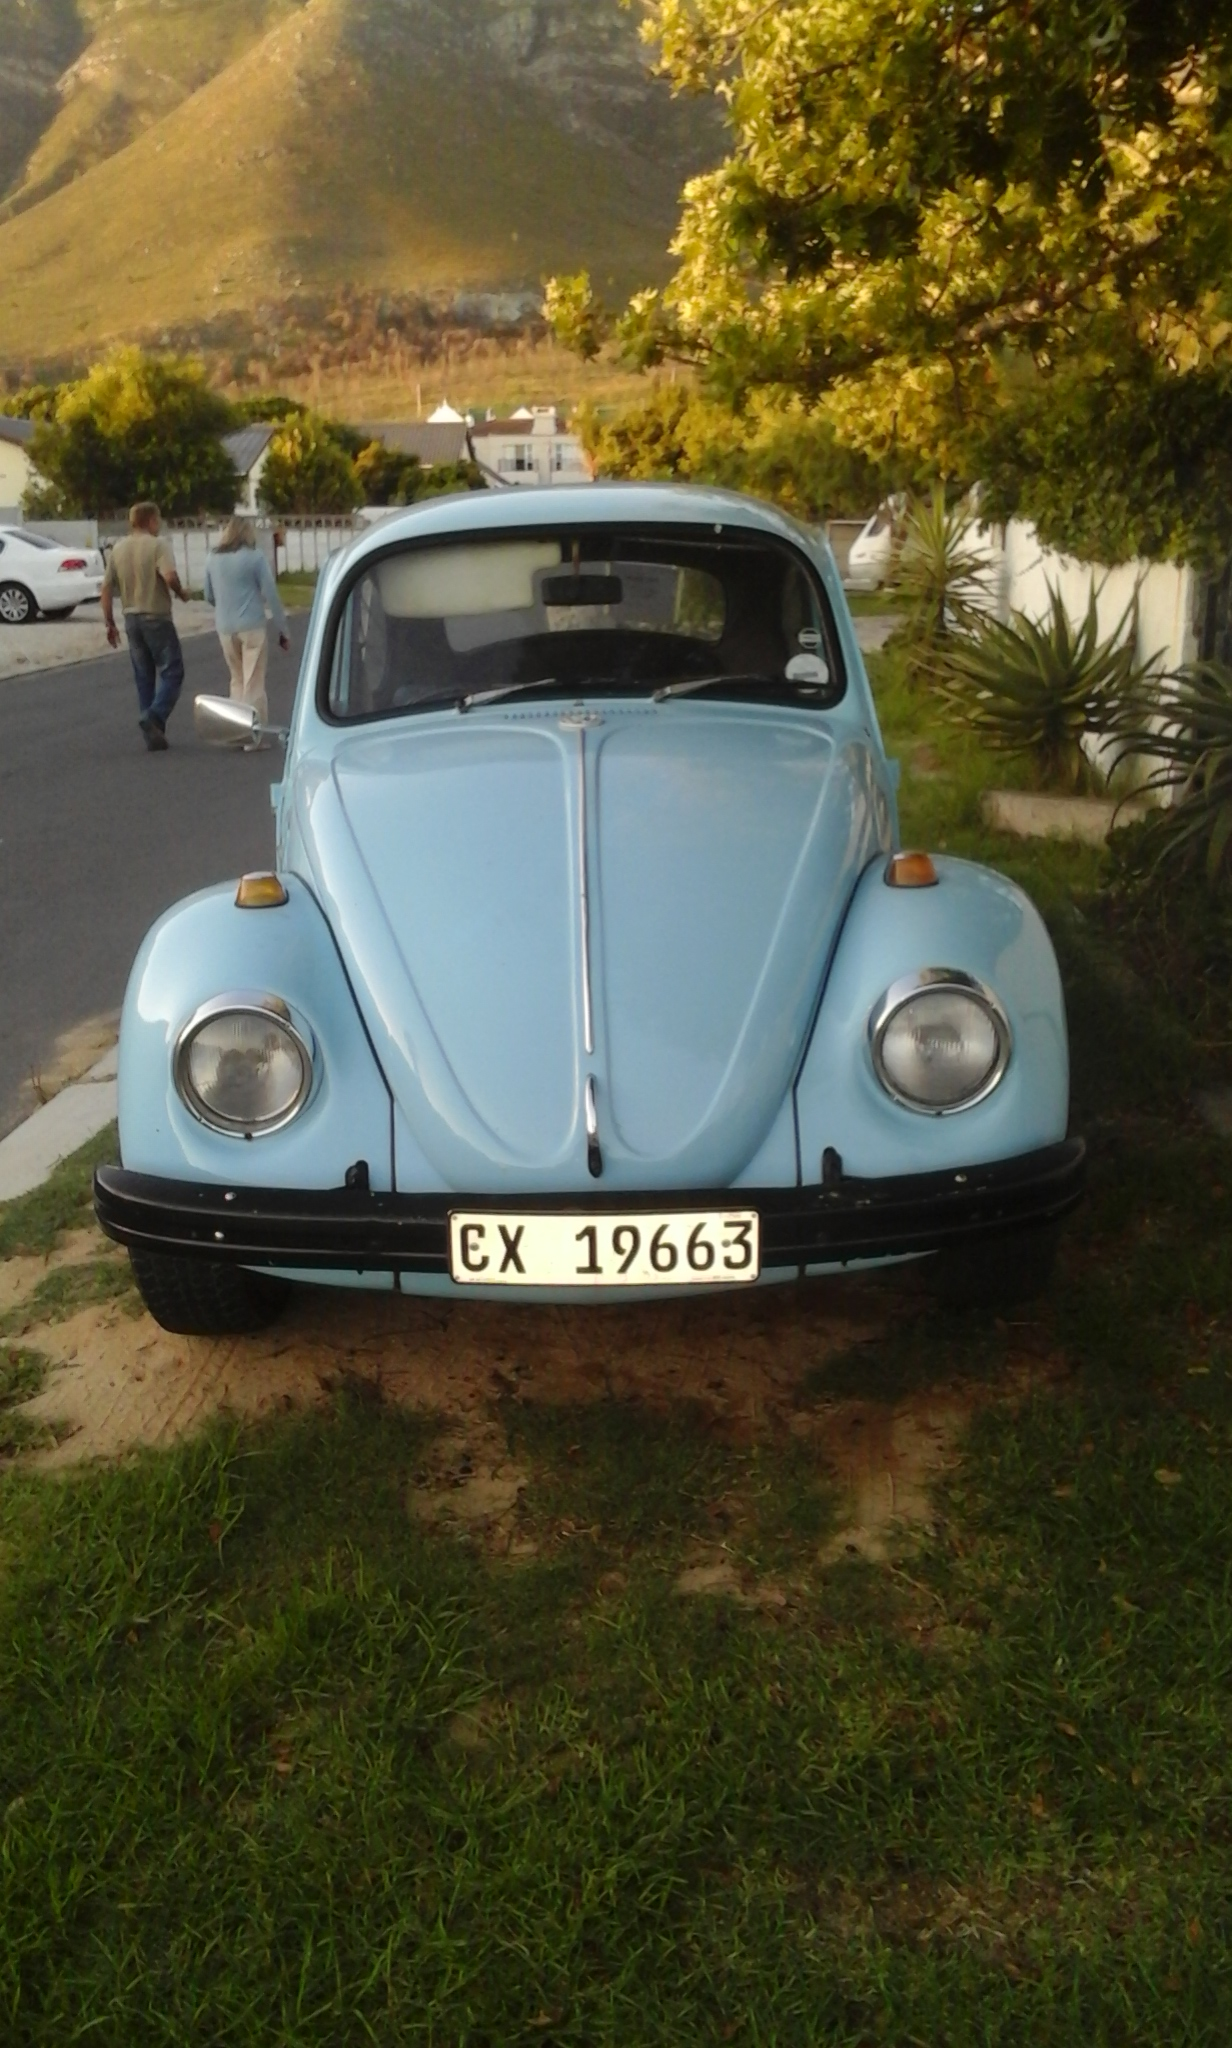 Olx Cars For Sale Under R20000 Cape Town Volkswagen Car